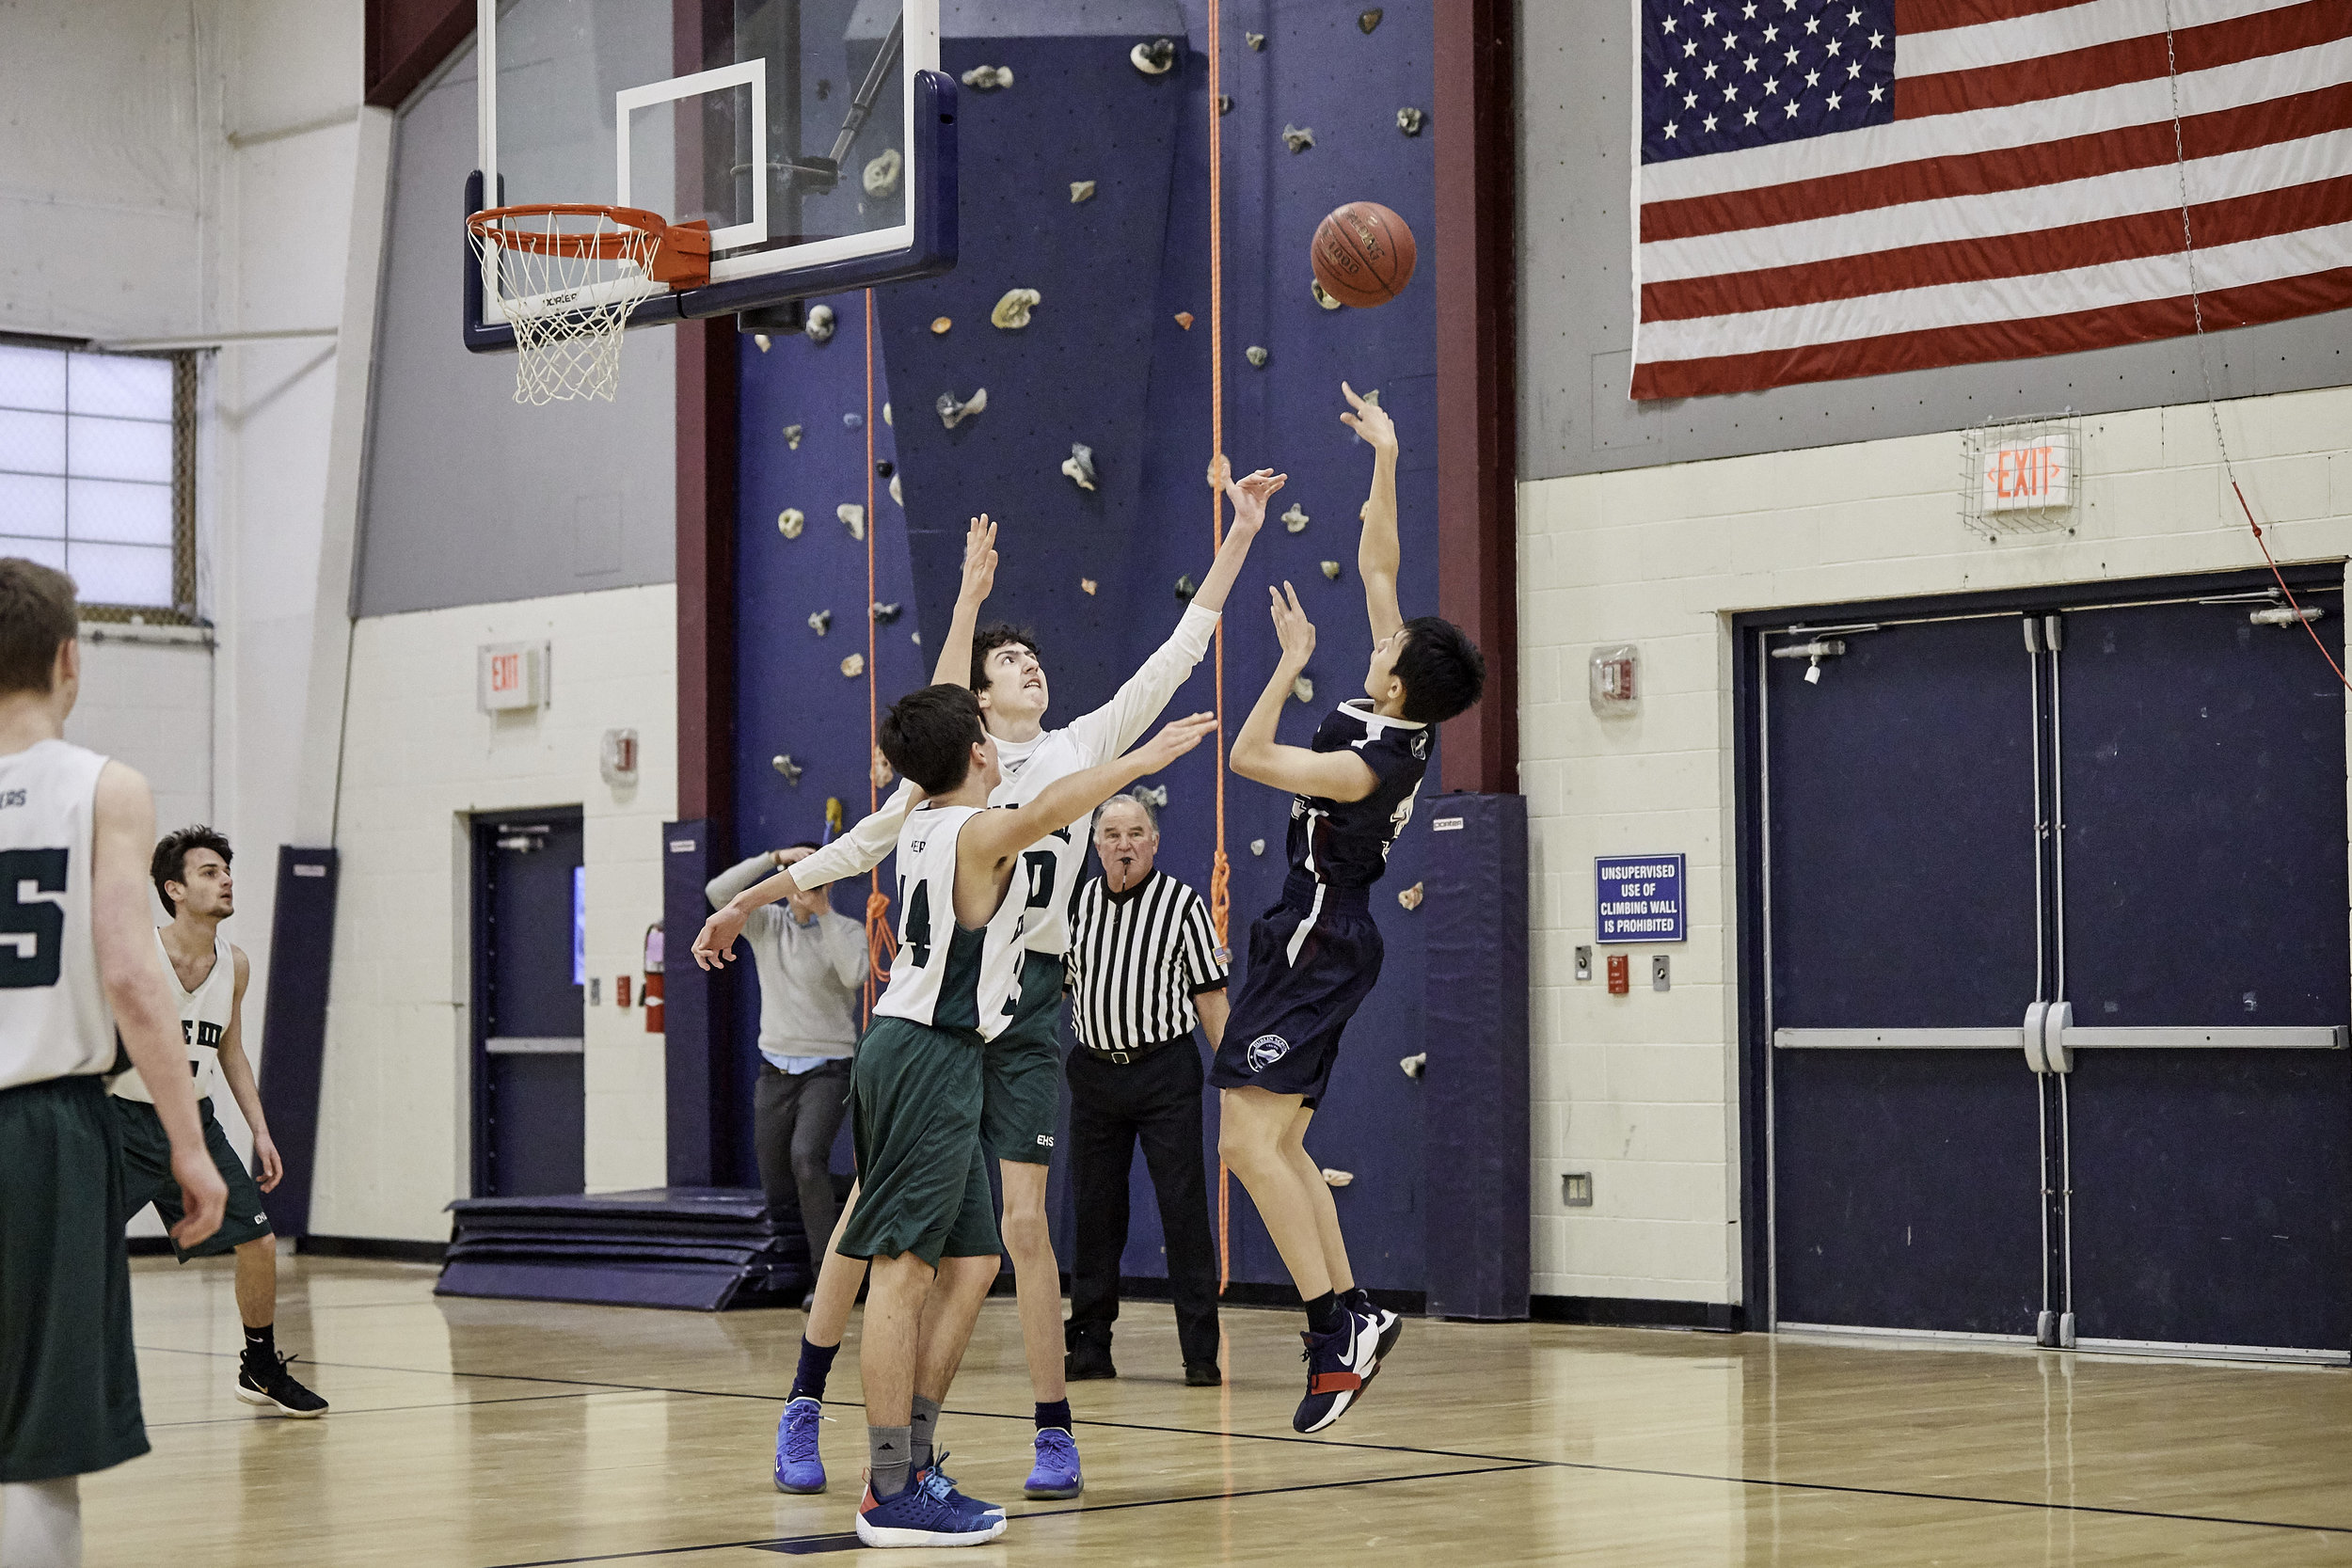 Boys Varsity Basketball vs. Eagle Hill School JV at RVAL Tournament - February 11, 2019 - 168053.jpg